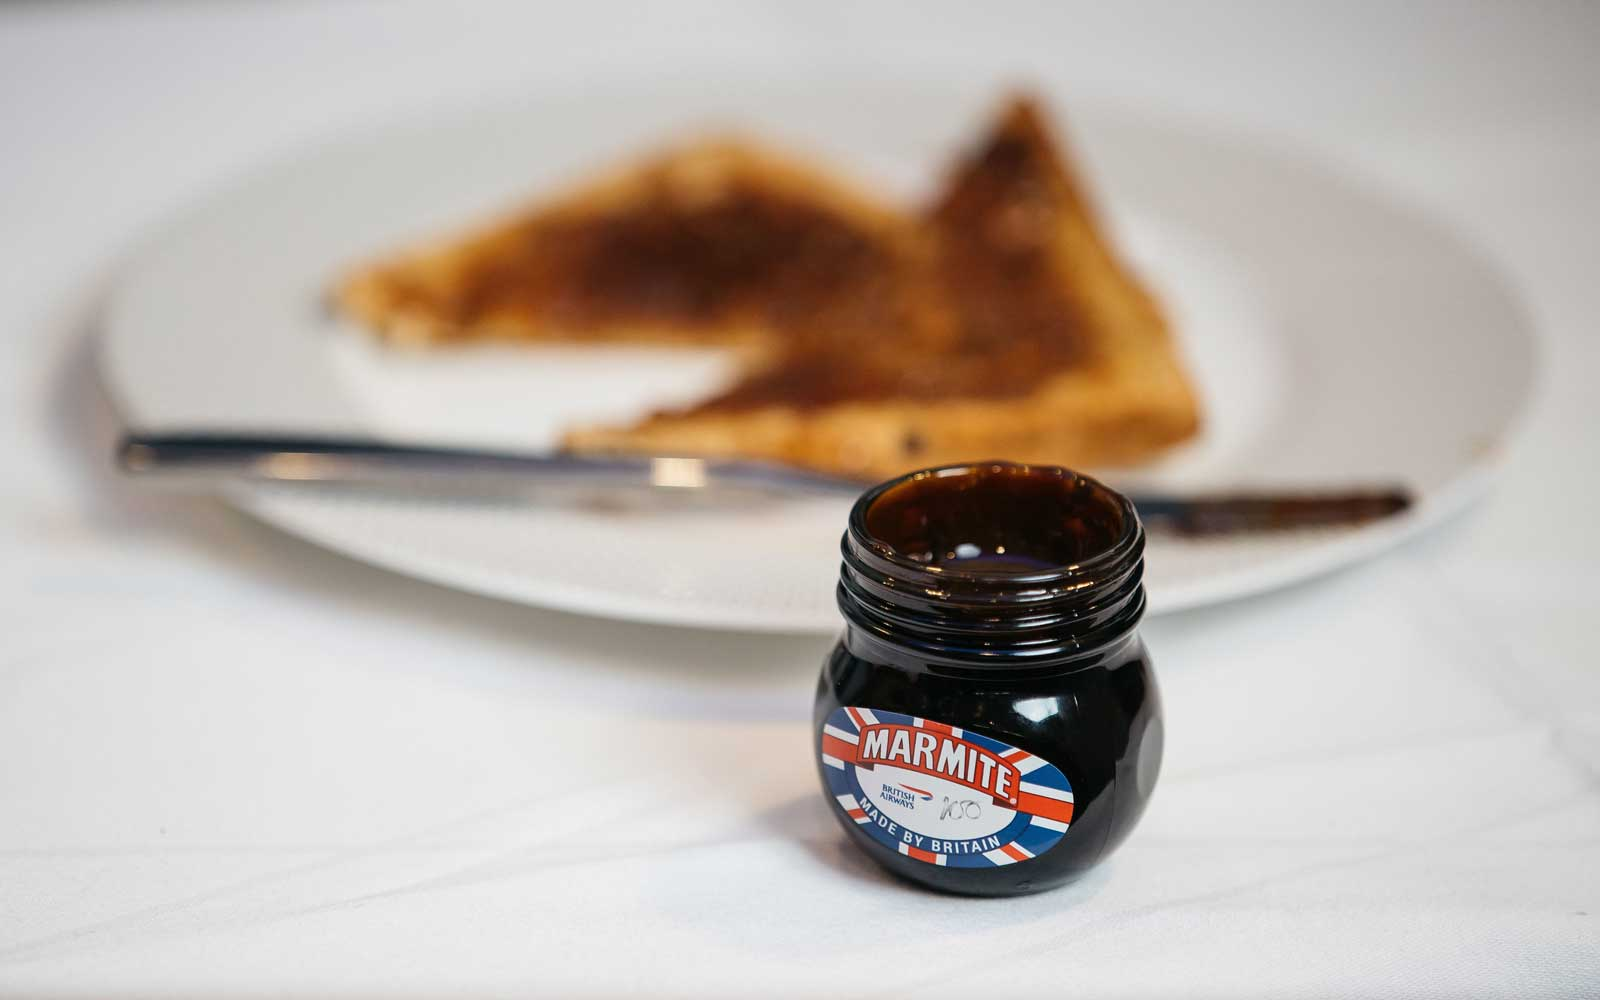 British Airways Is Celebrating Its Centennial With Absurdly British Food